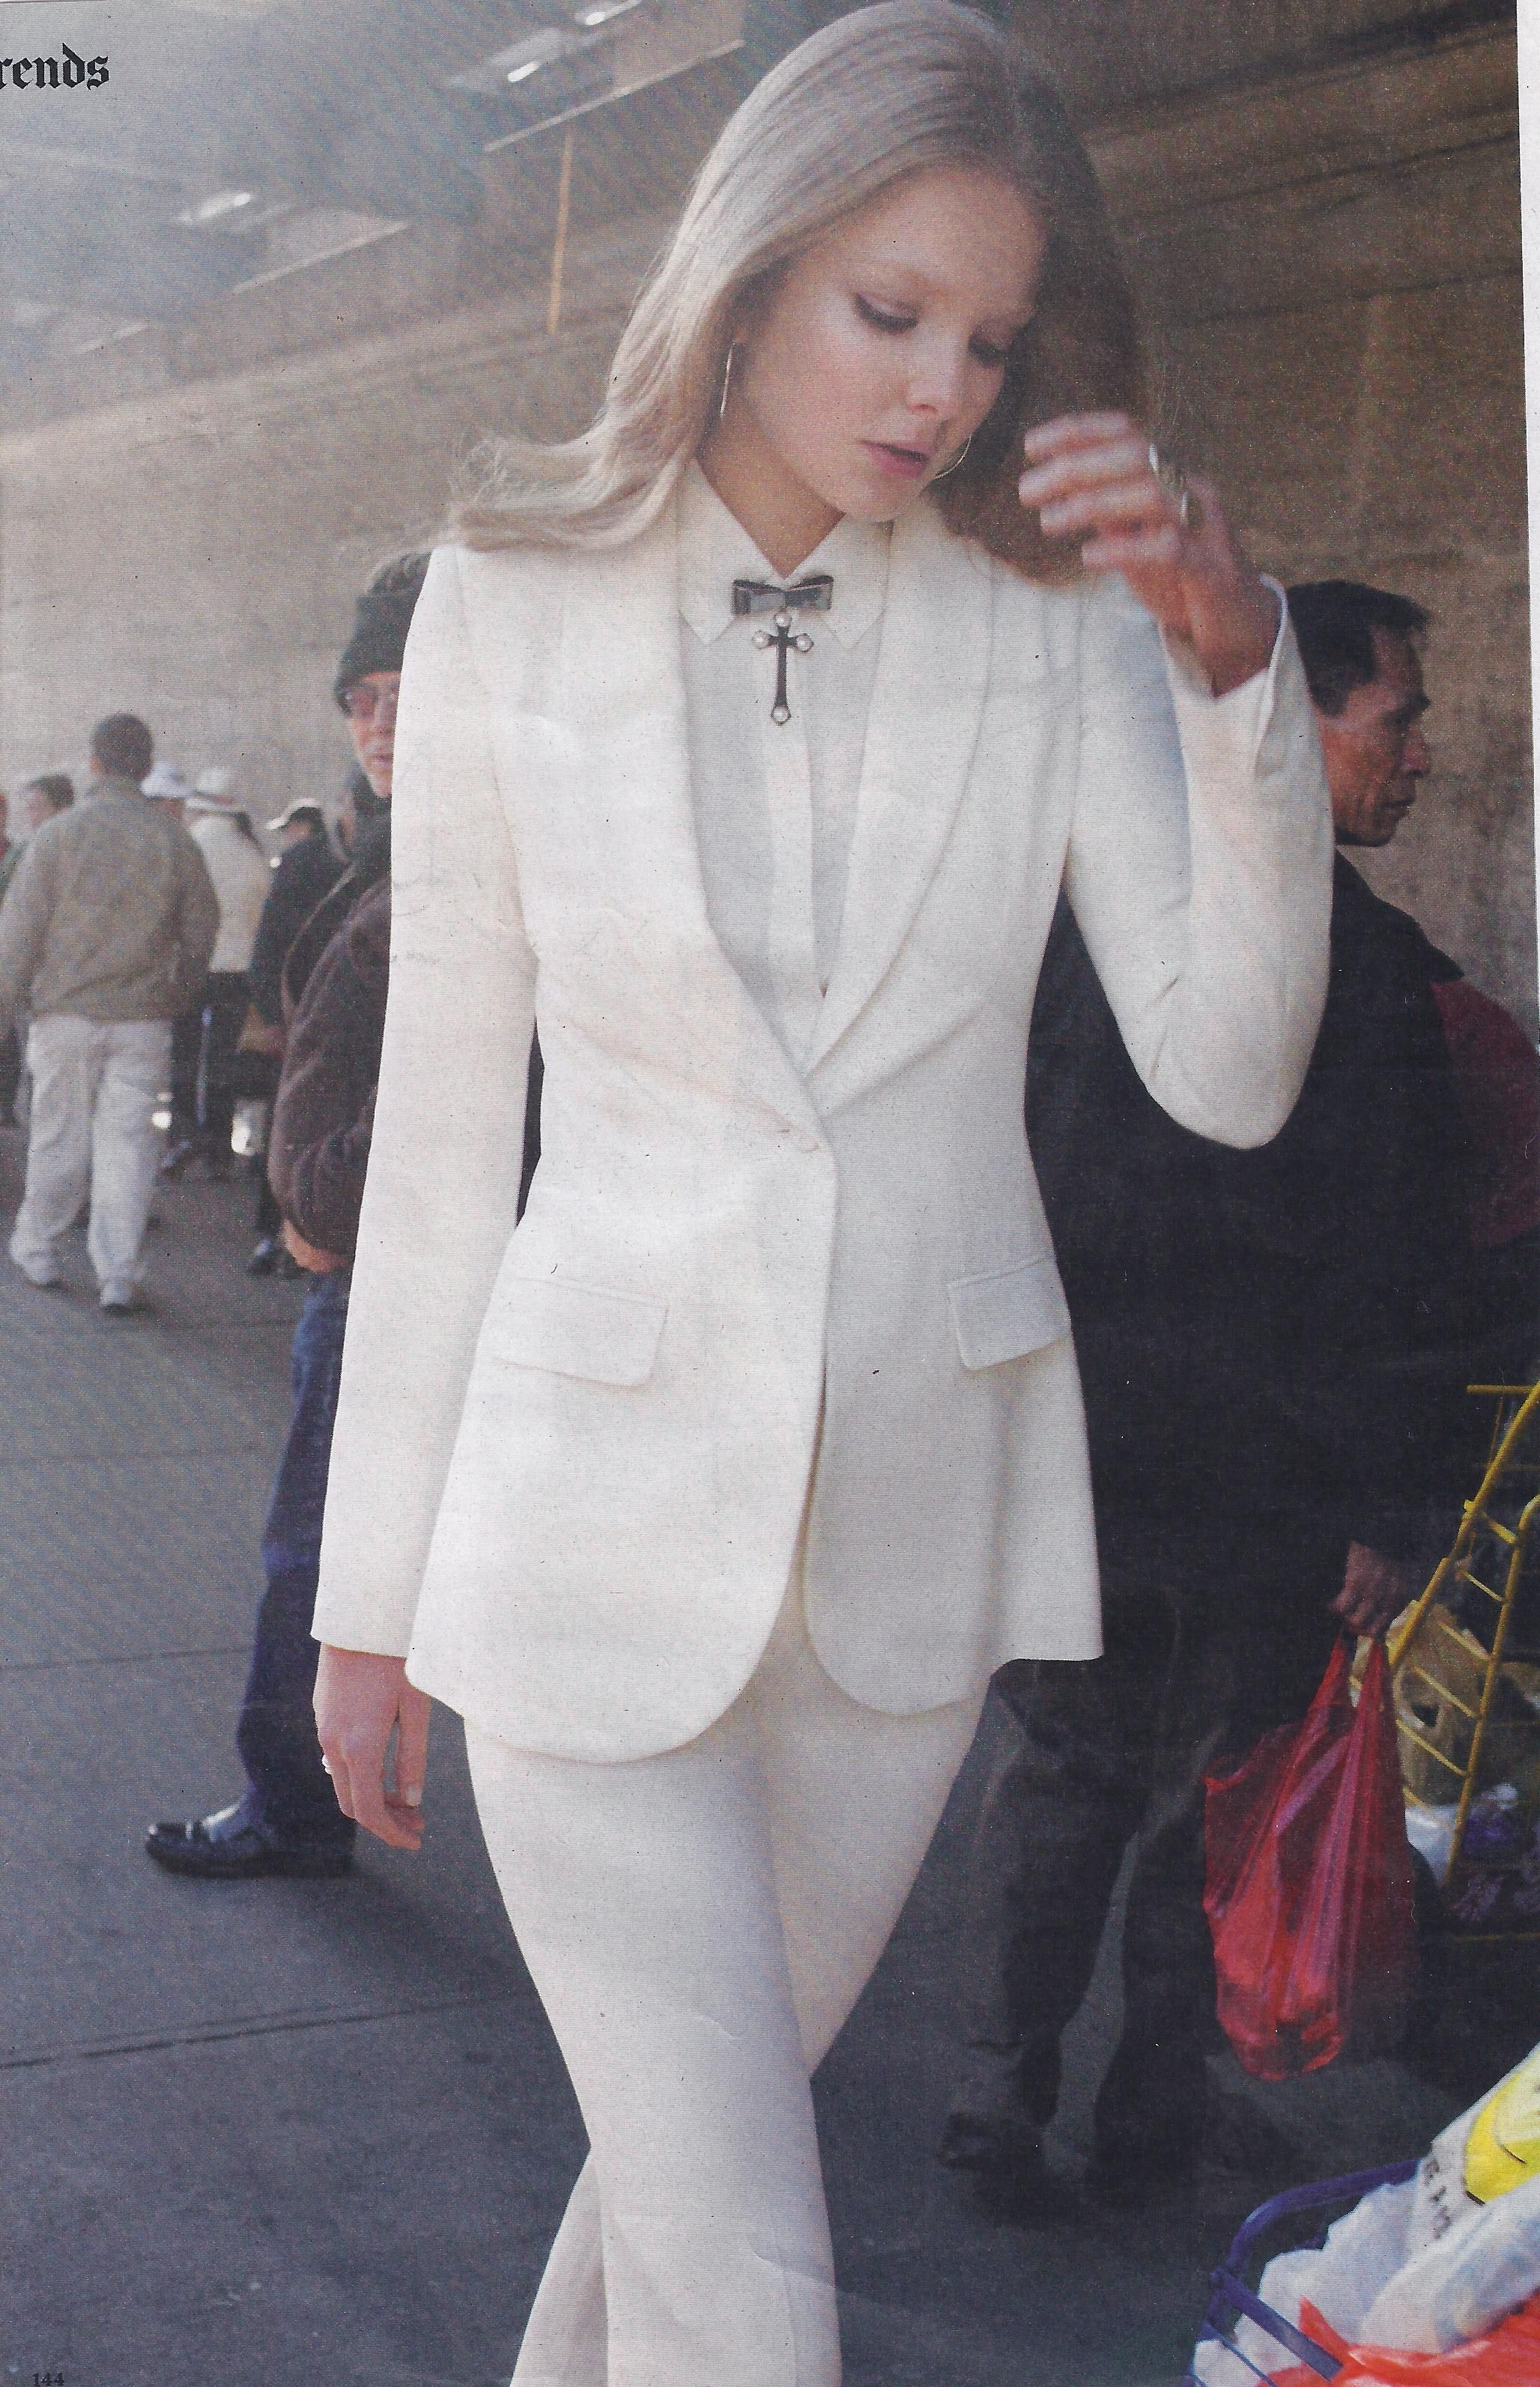 women's suits for wedding - Google Search | Stuff to Buy ...